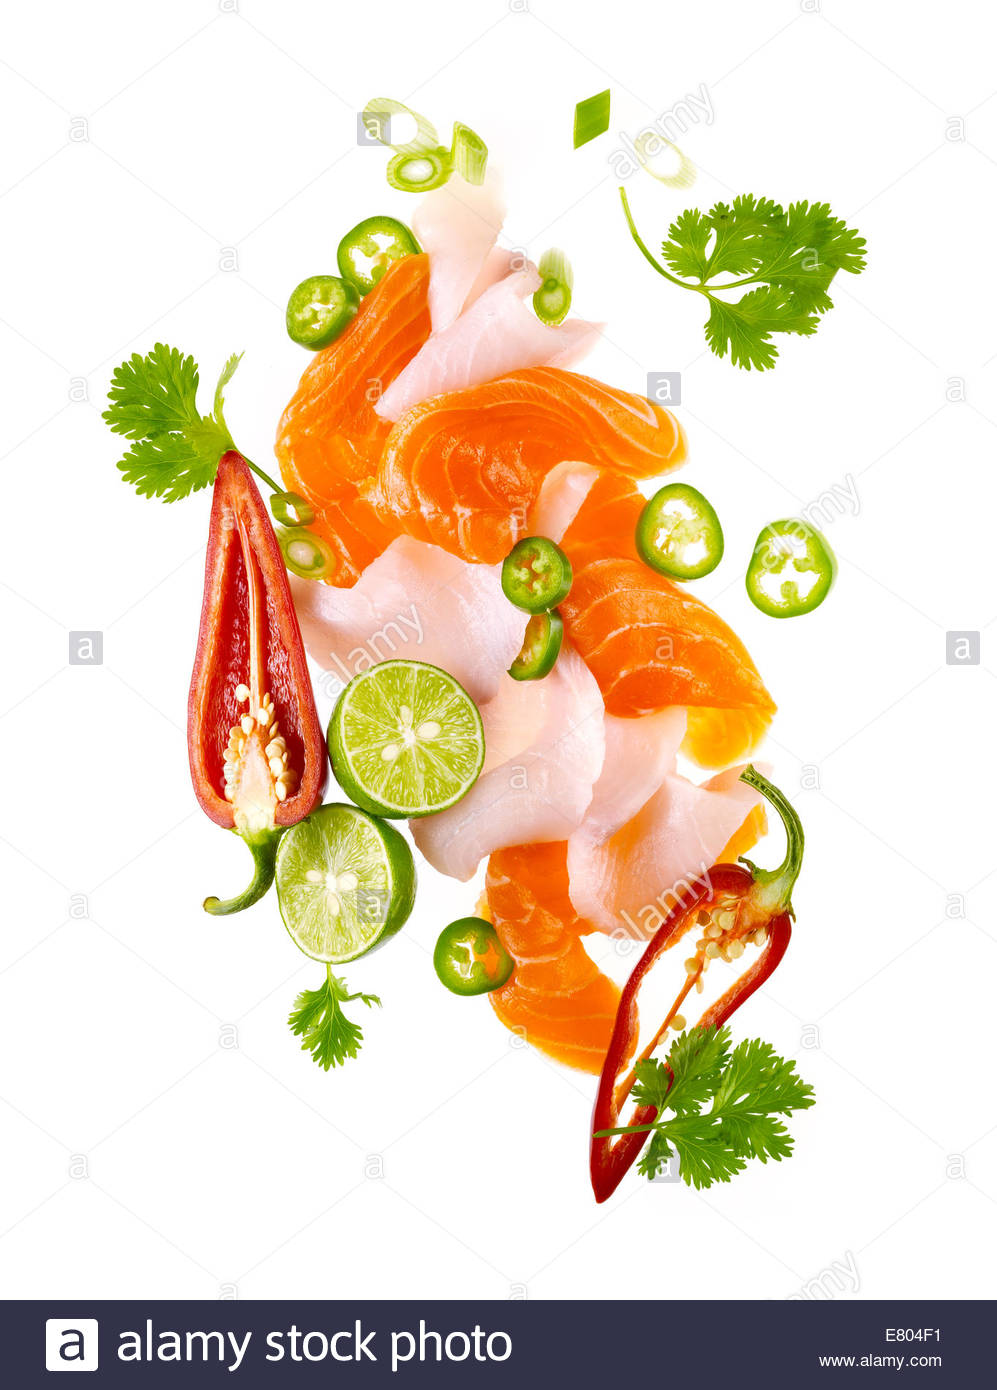 Ceviche of tuna and salmon with finely cut vegetables and garnish on white background - Stock Image